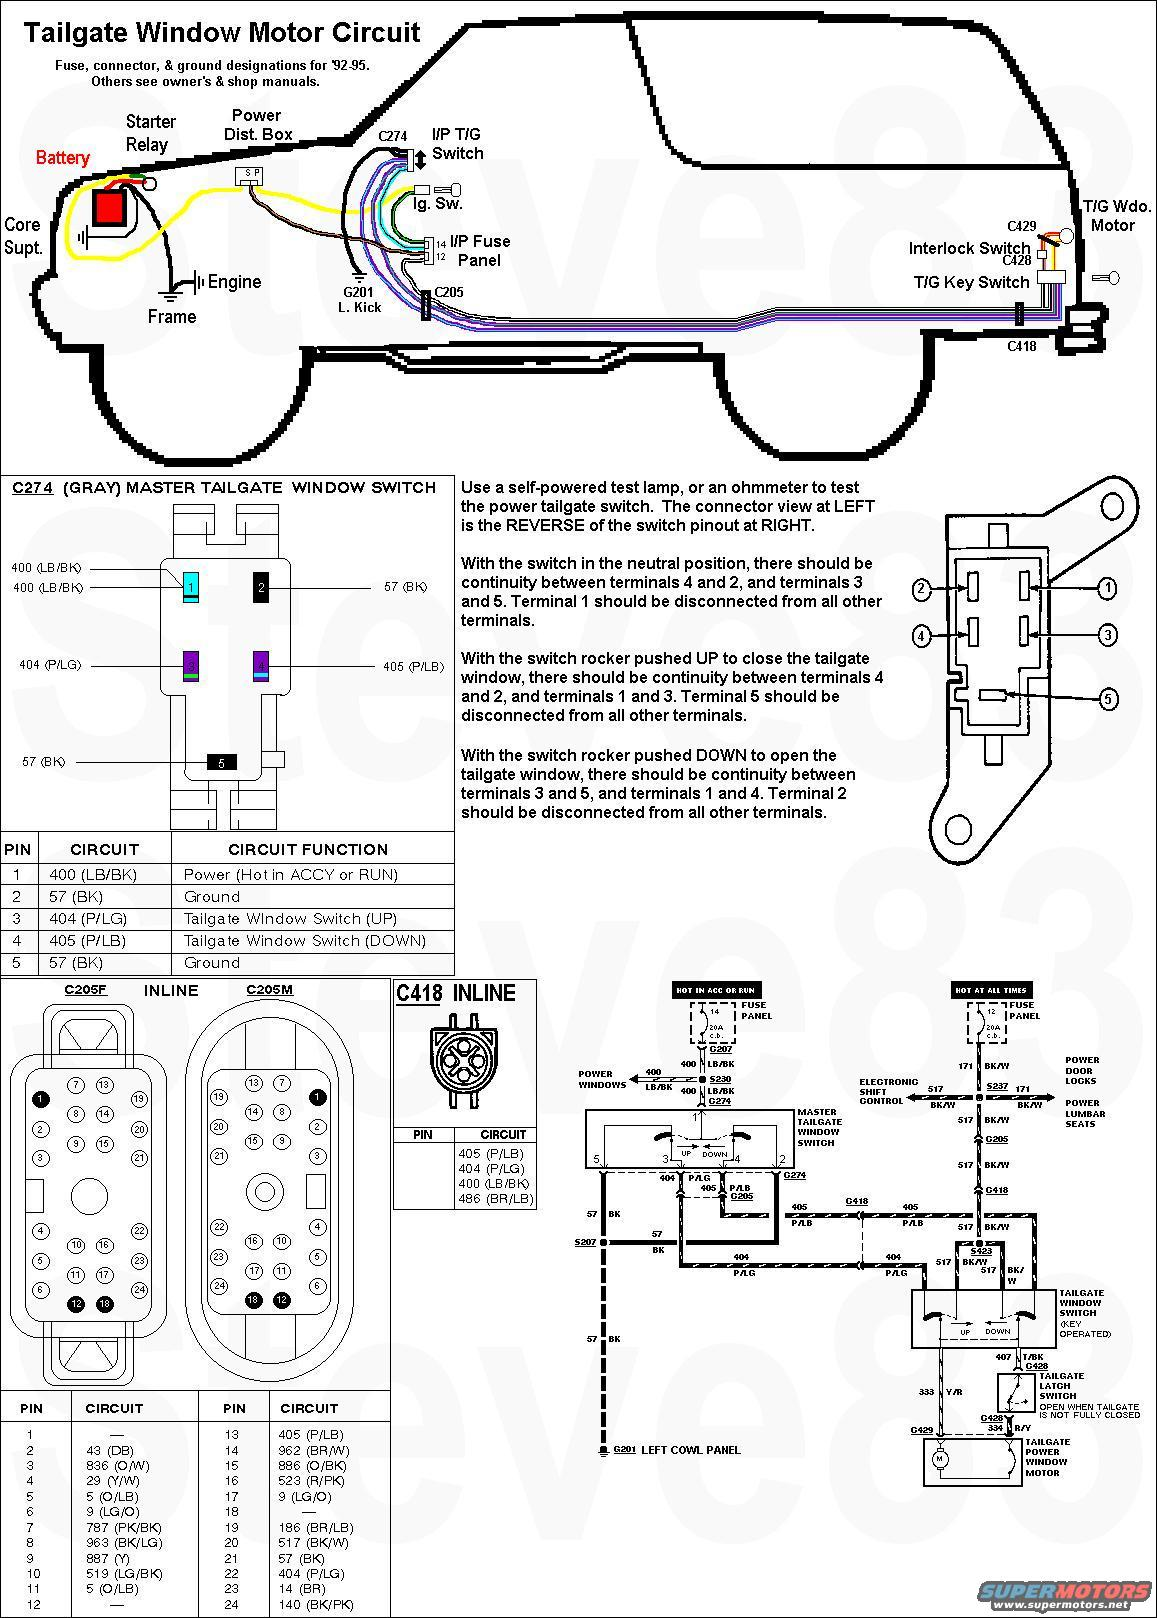 1972 ford econoline wiring diagram with 189291 How Do I Bypass Tailgate Safety Switch on 1972 Ford Turn Signal Switch Wiring Diagram likewise Discussion C5249 ds533747 together with 1965 Ford Econoline Pickup Wiring Diagram likewise 1466522 77 F150 351m Ignition likewise 2003 Ford F250 Wiring Diagram.